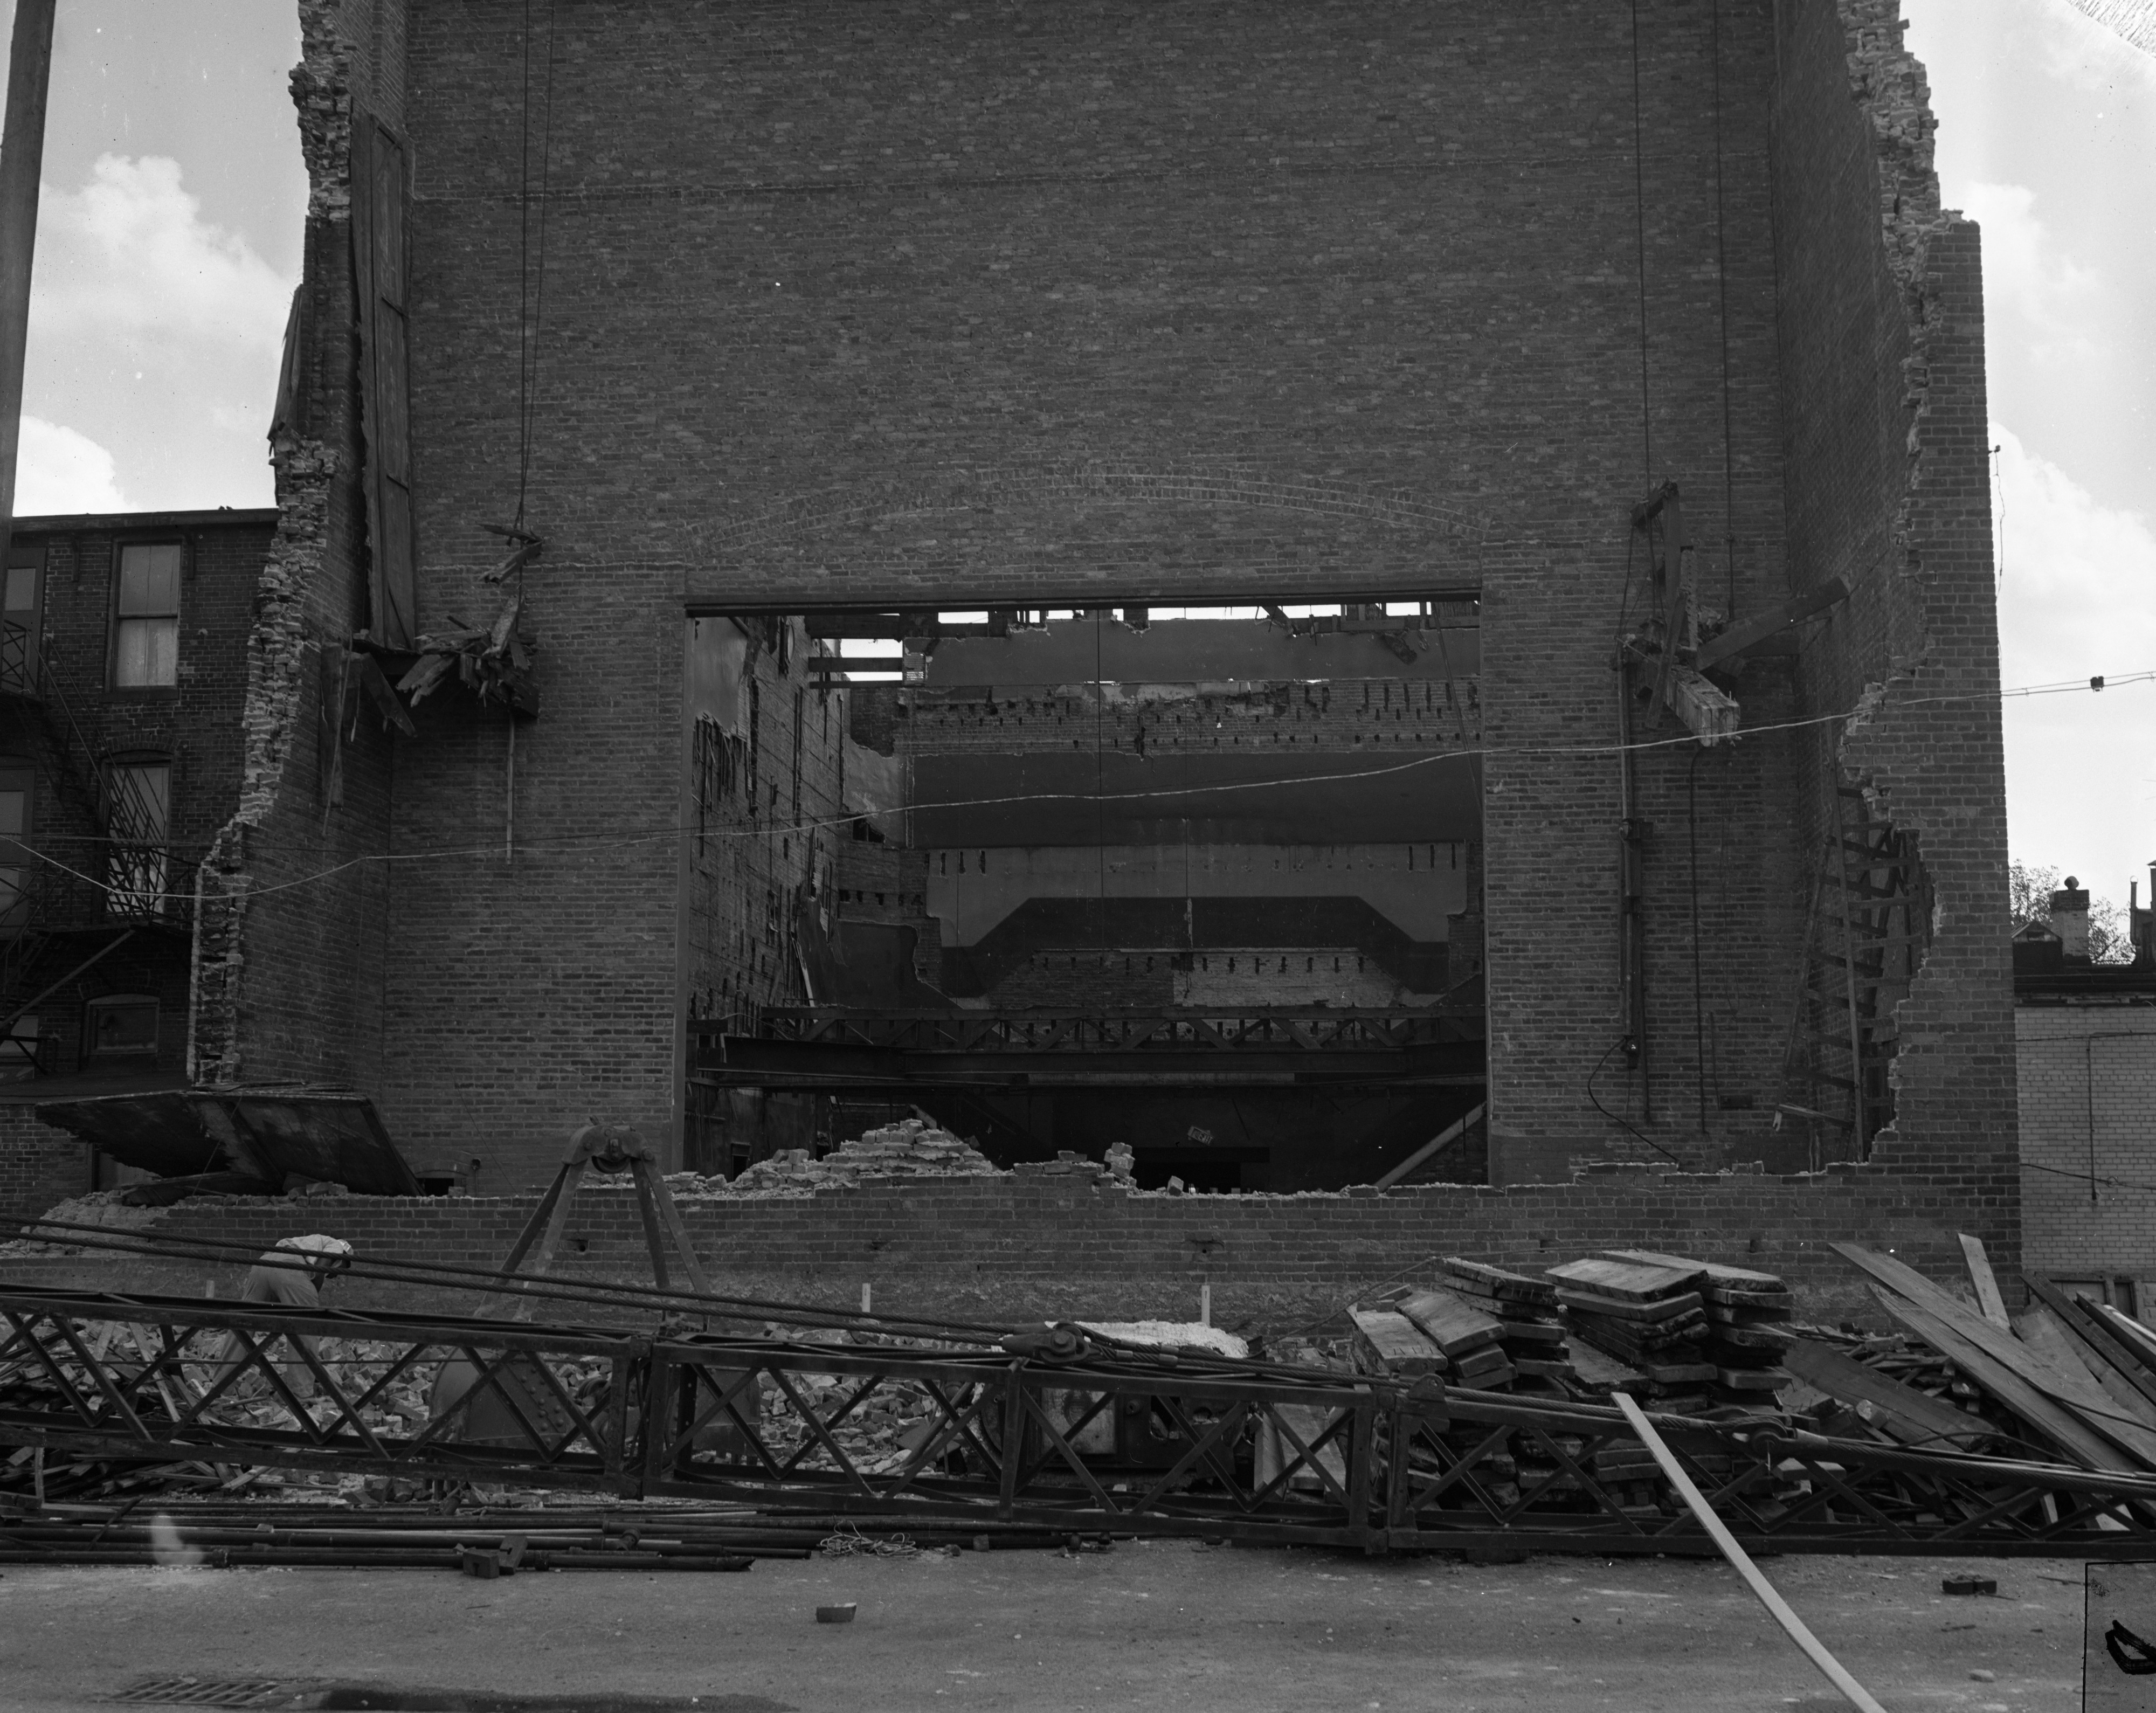 Wuerth Theatre in Ypsilanti coming down to expand Adams St. parking lot, September 1959 image